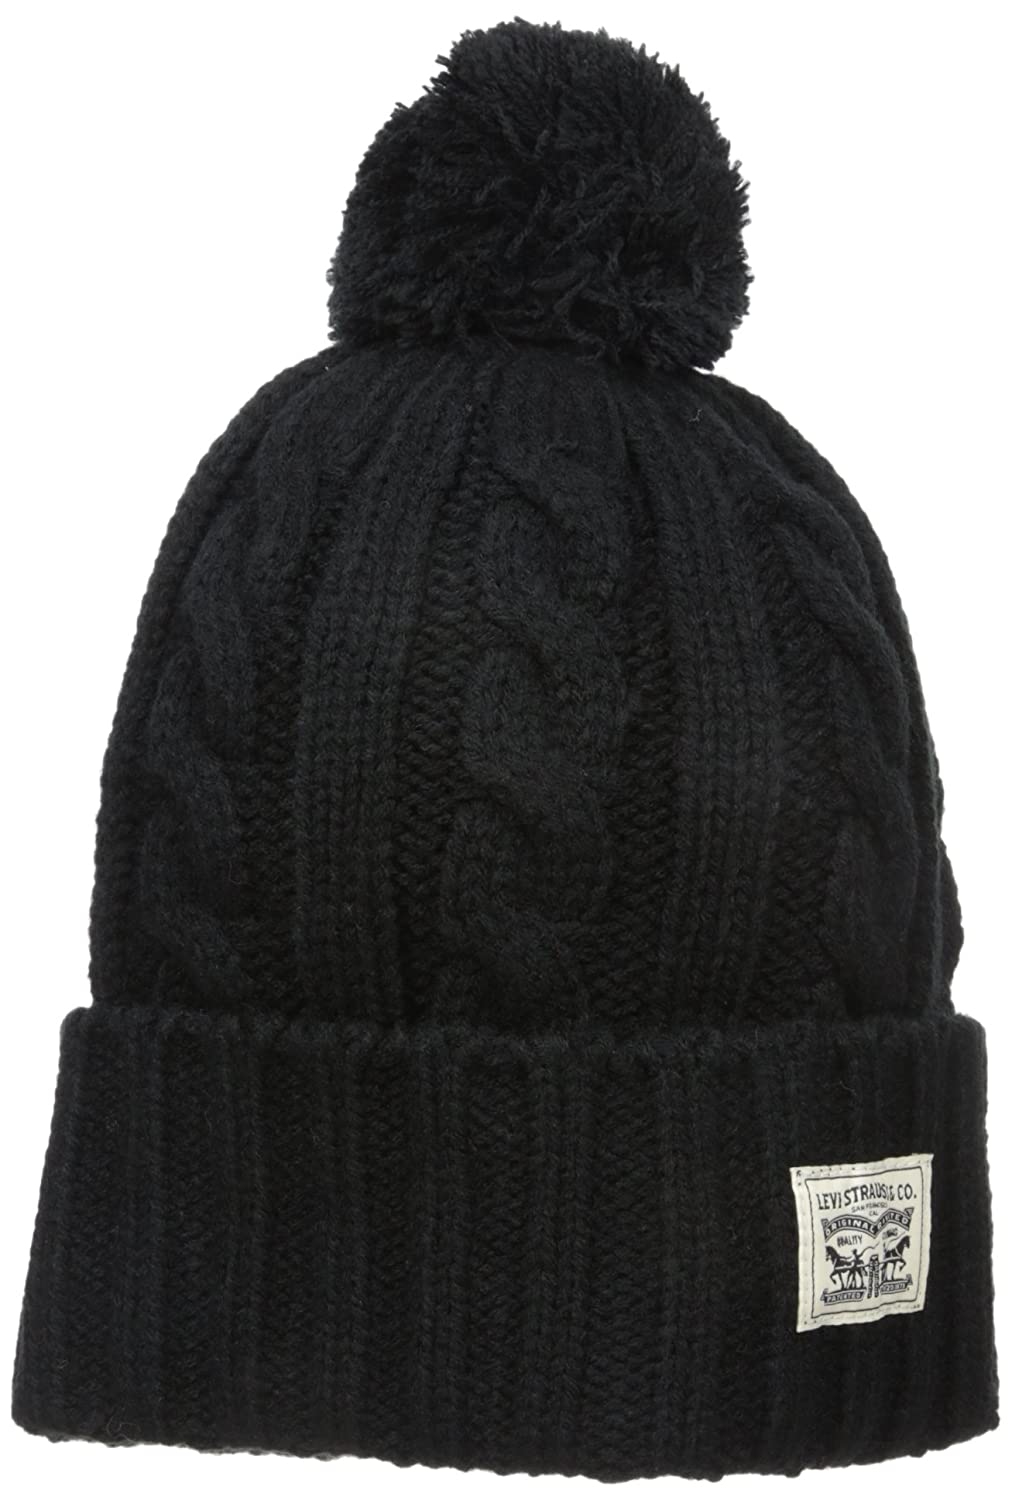 9f60bf11e130 Levi's Men's Pompom Cable Beanie Hat, Black, One Size at Amazon Men's  Clothing store: